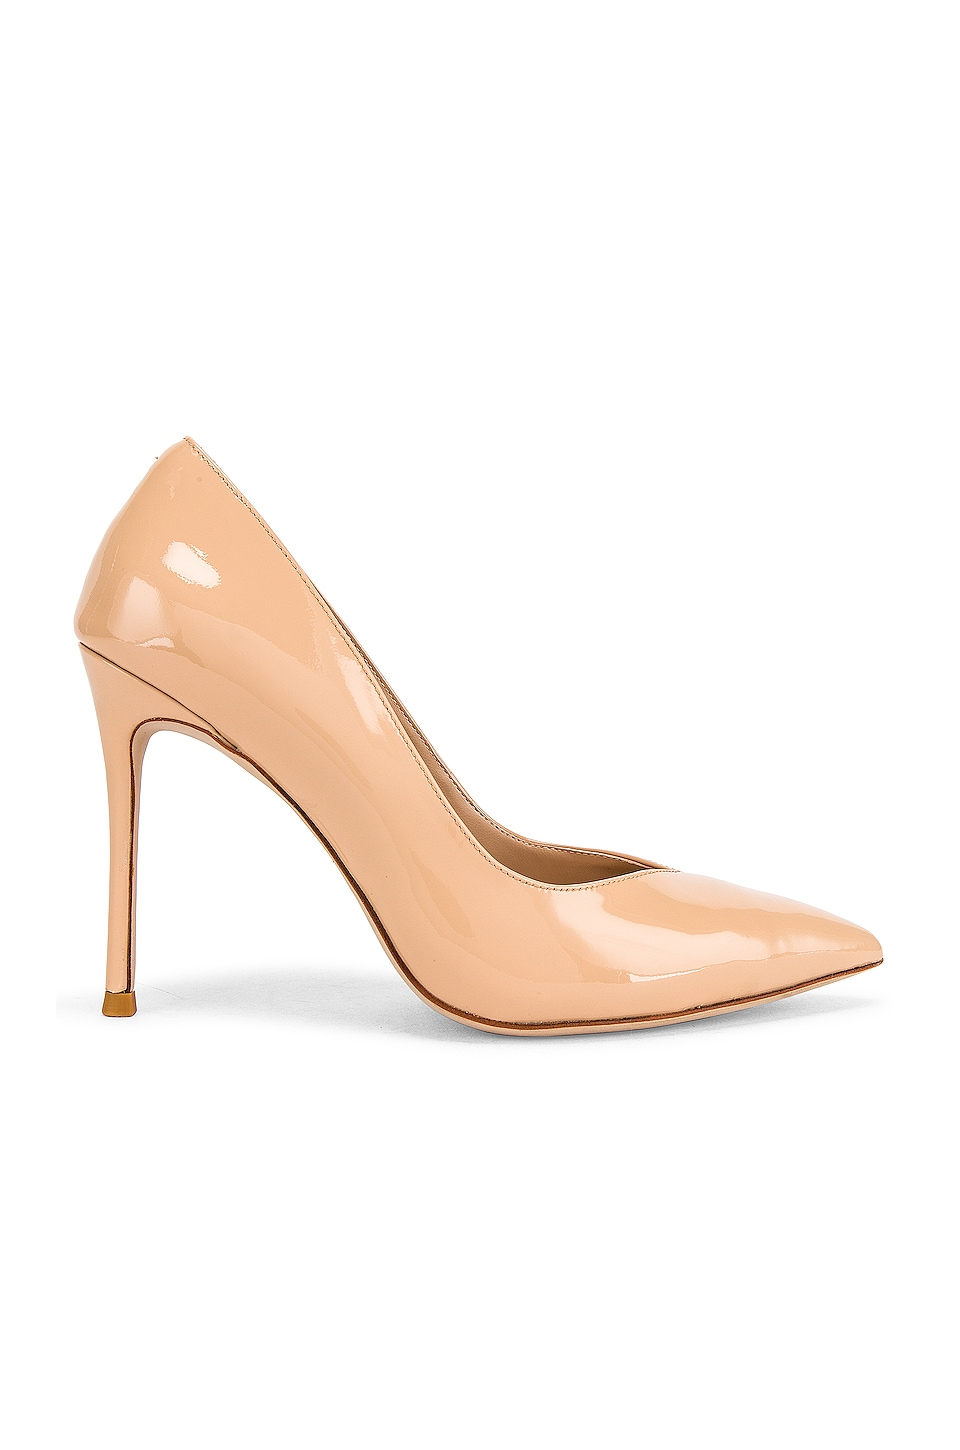 Jeffrey Campbell Lure Heel in Nude Patent